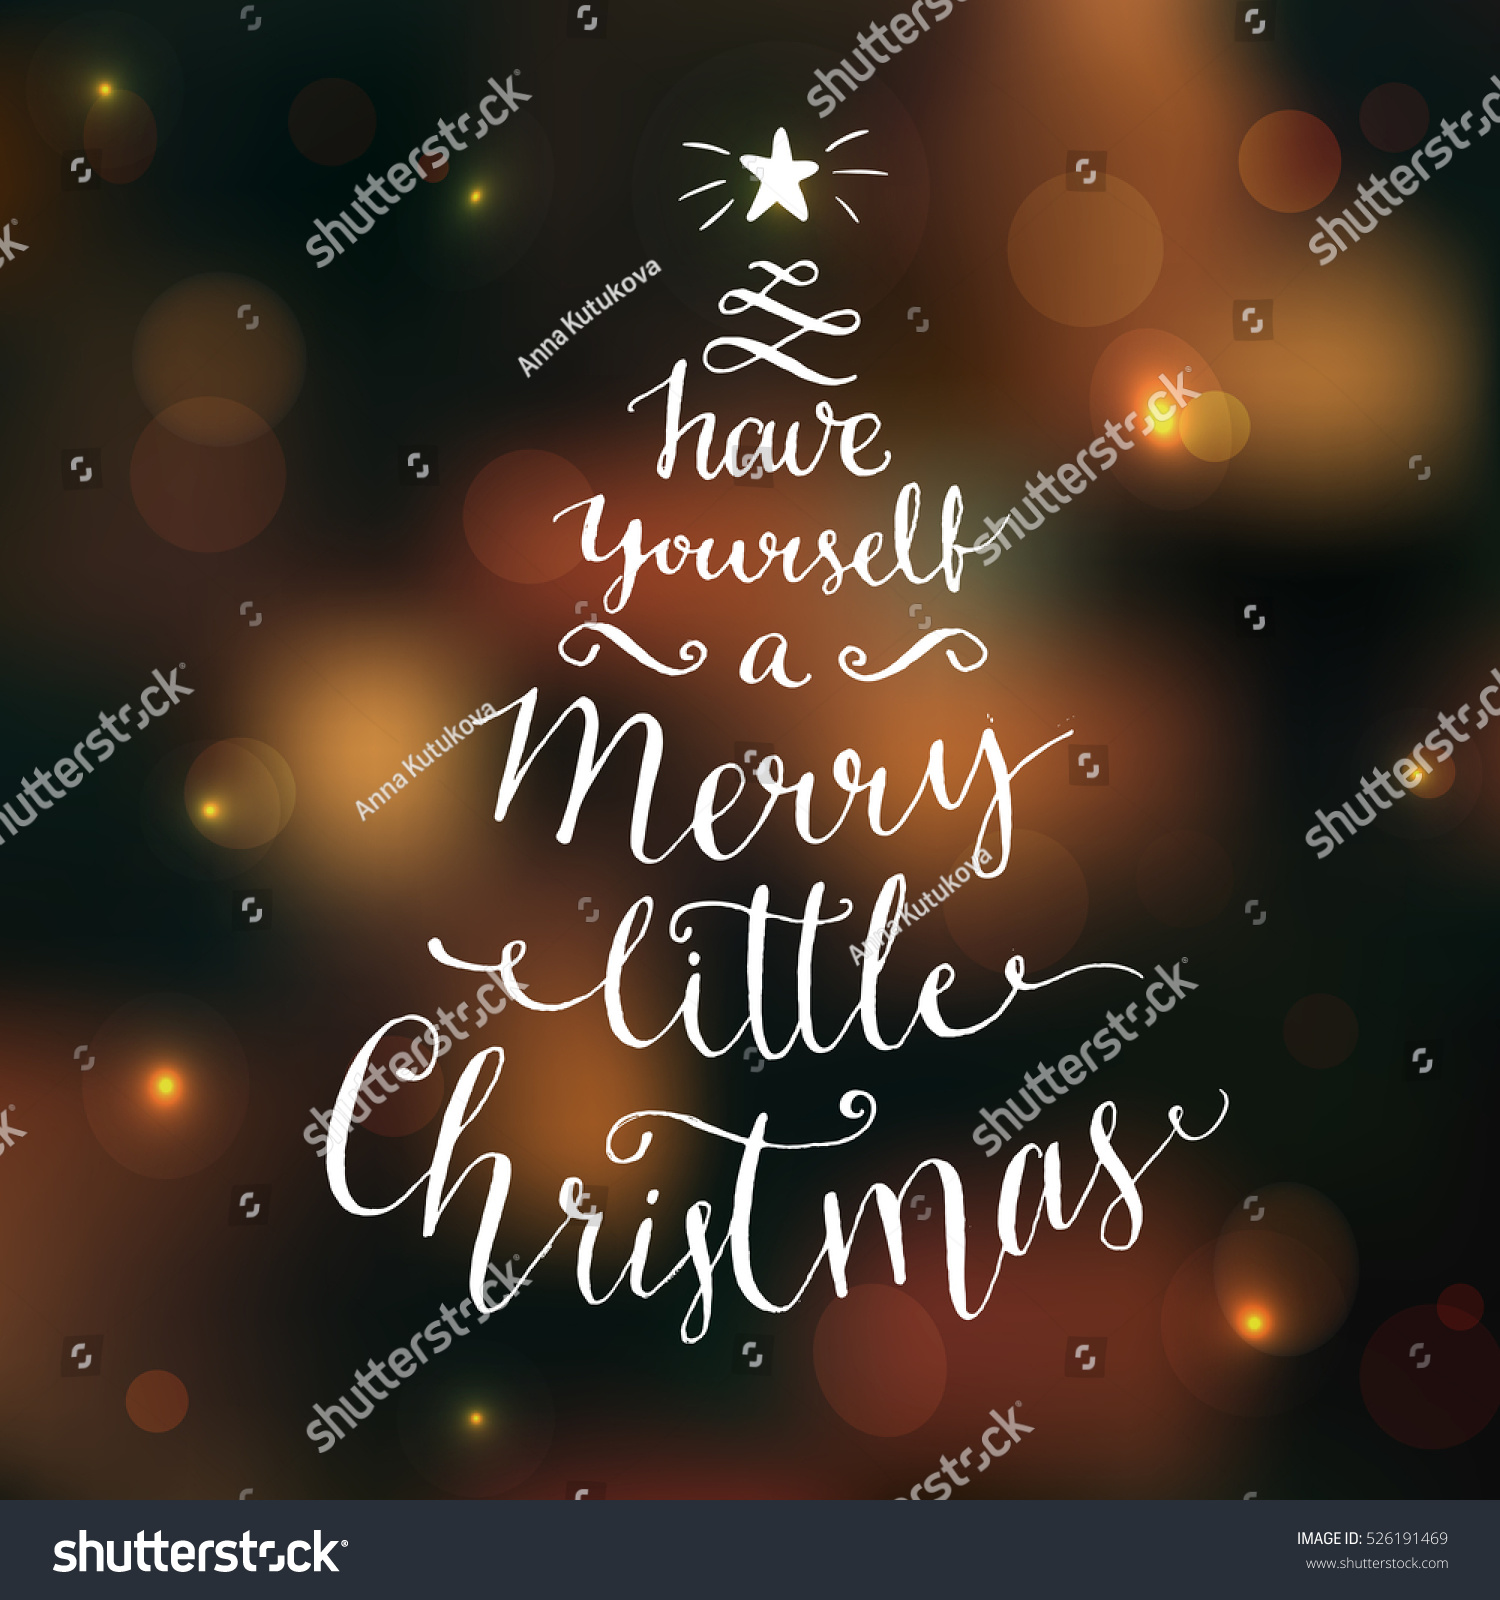 Have Yourself Merry Little Christmas Greeting Stock Vector ...